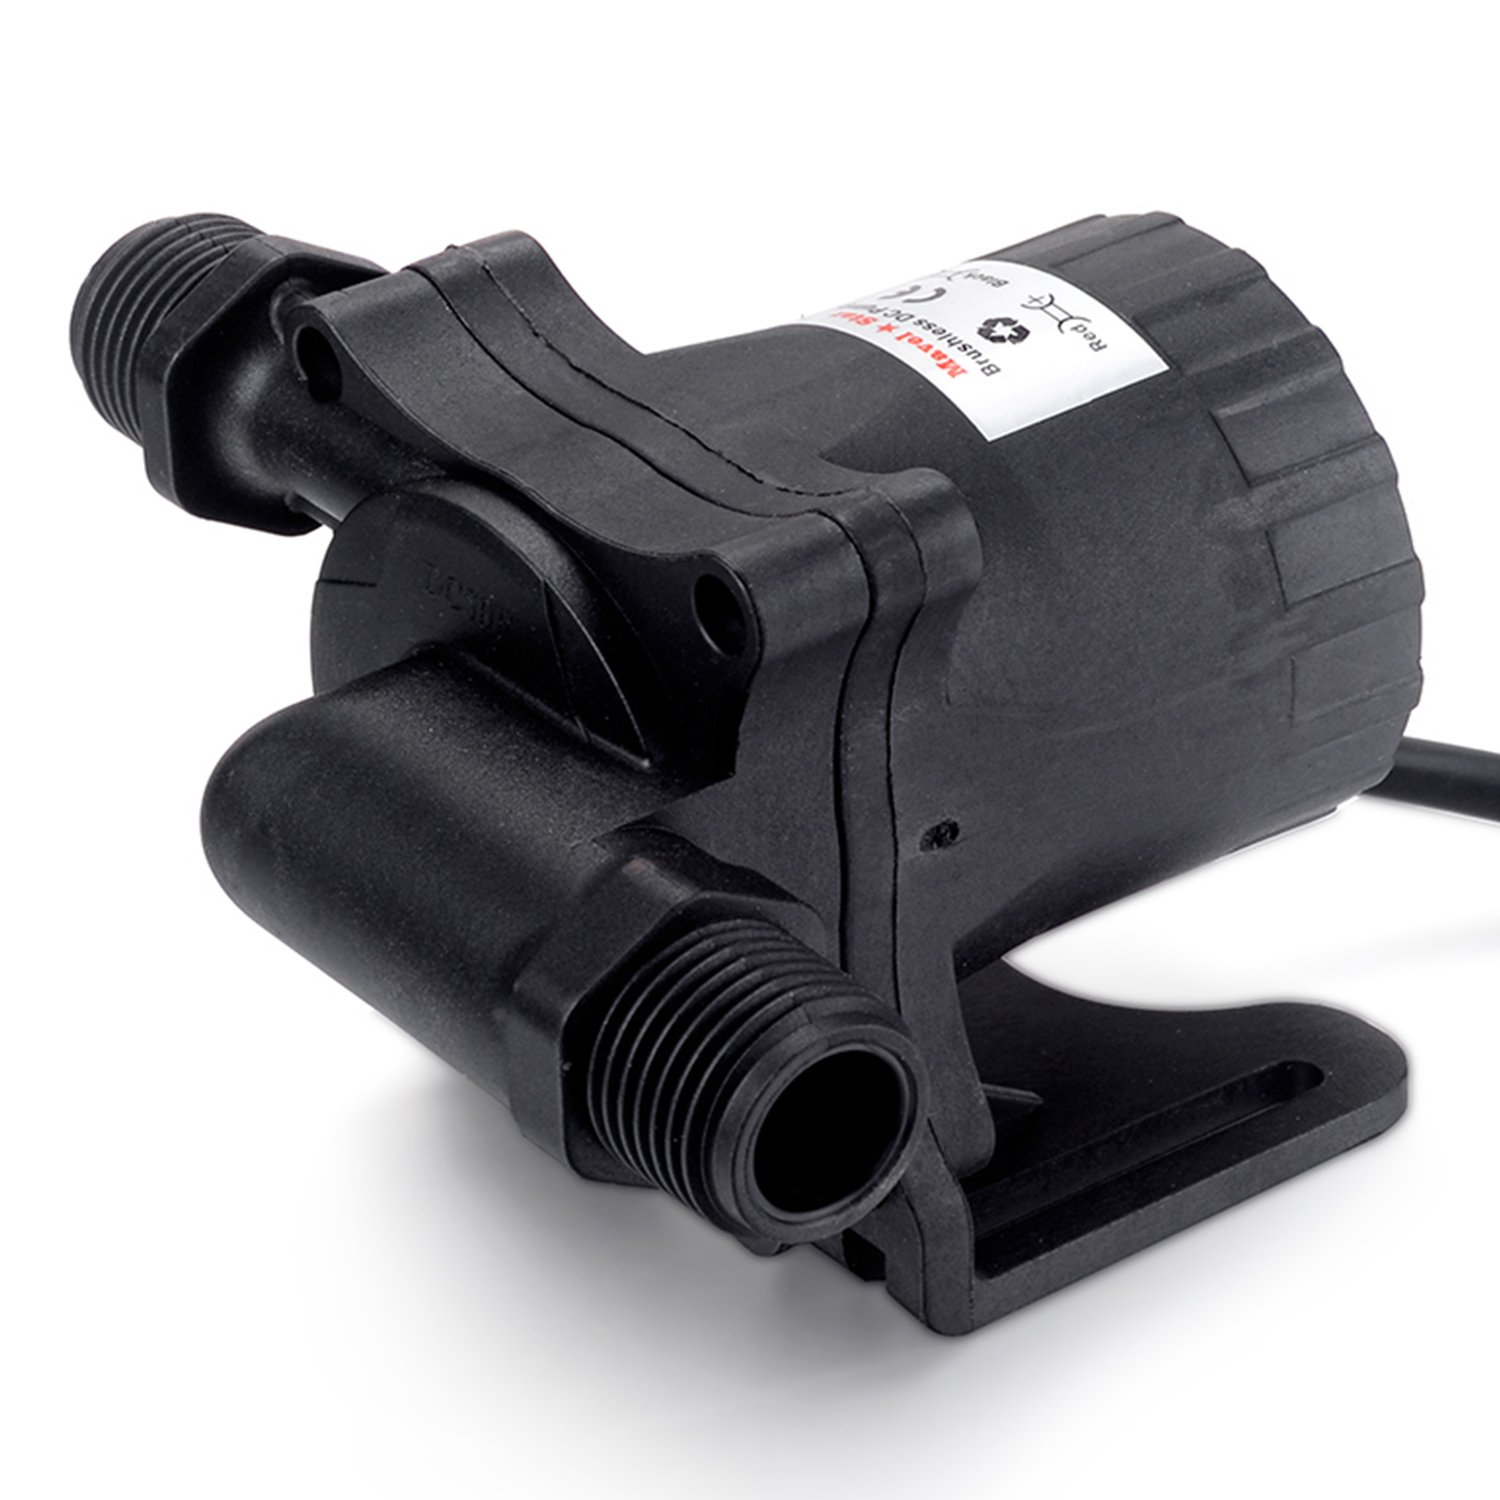 Mavel Star 12V DC Submersible Water Pump 348 GPH Brushless Magnetic Drived fountains Water Pump